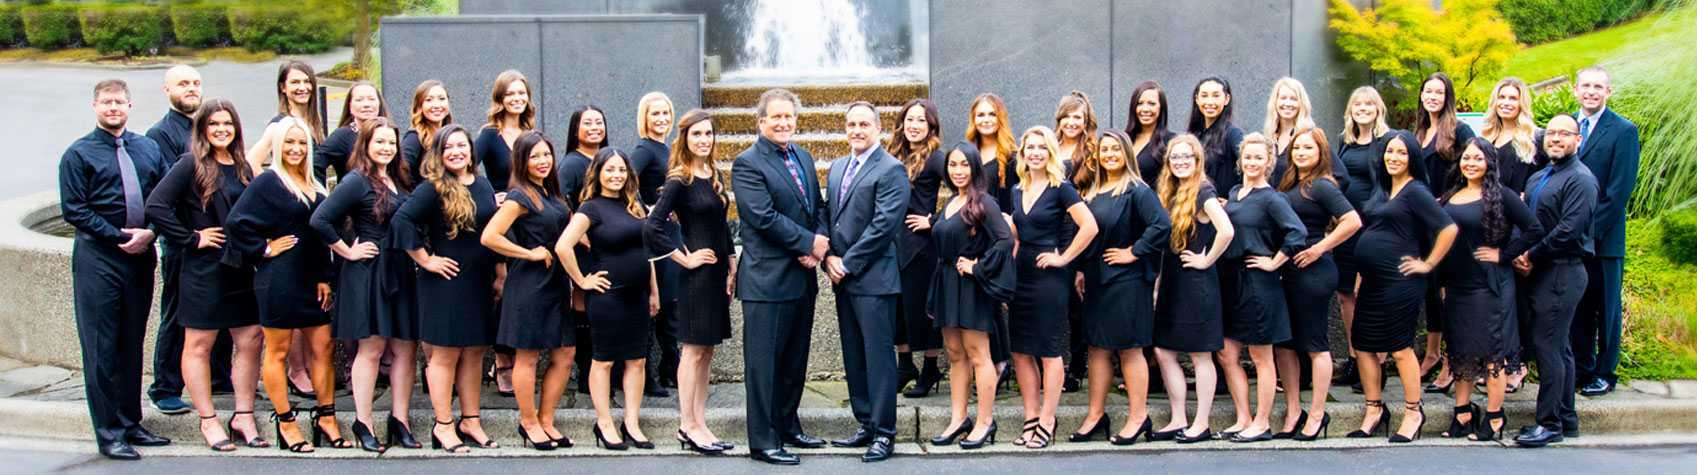 The Seattle Plastic Surgery Team